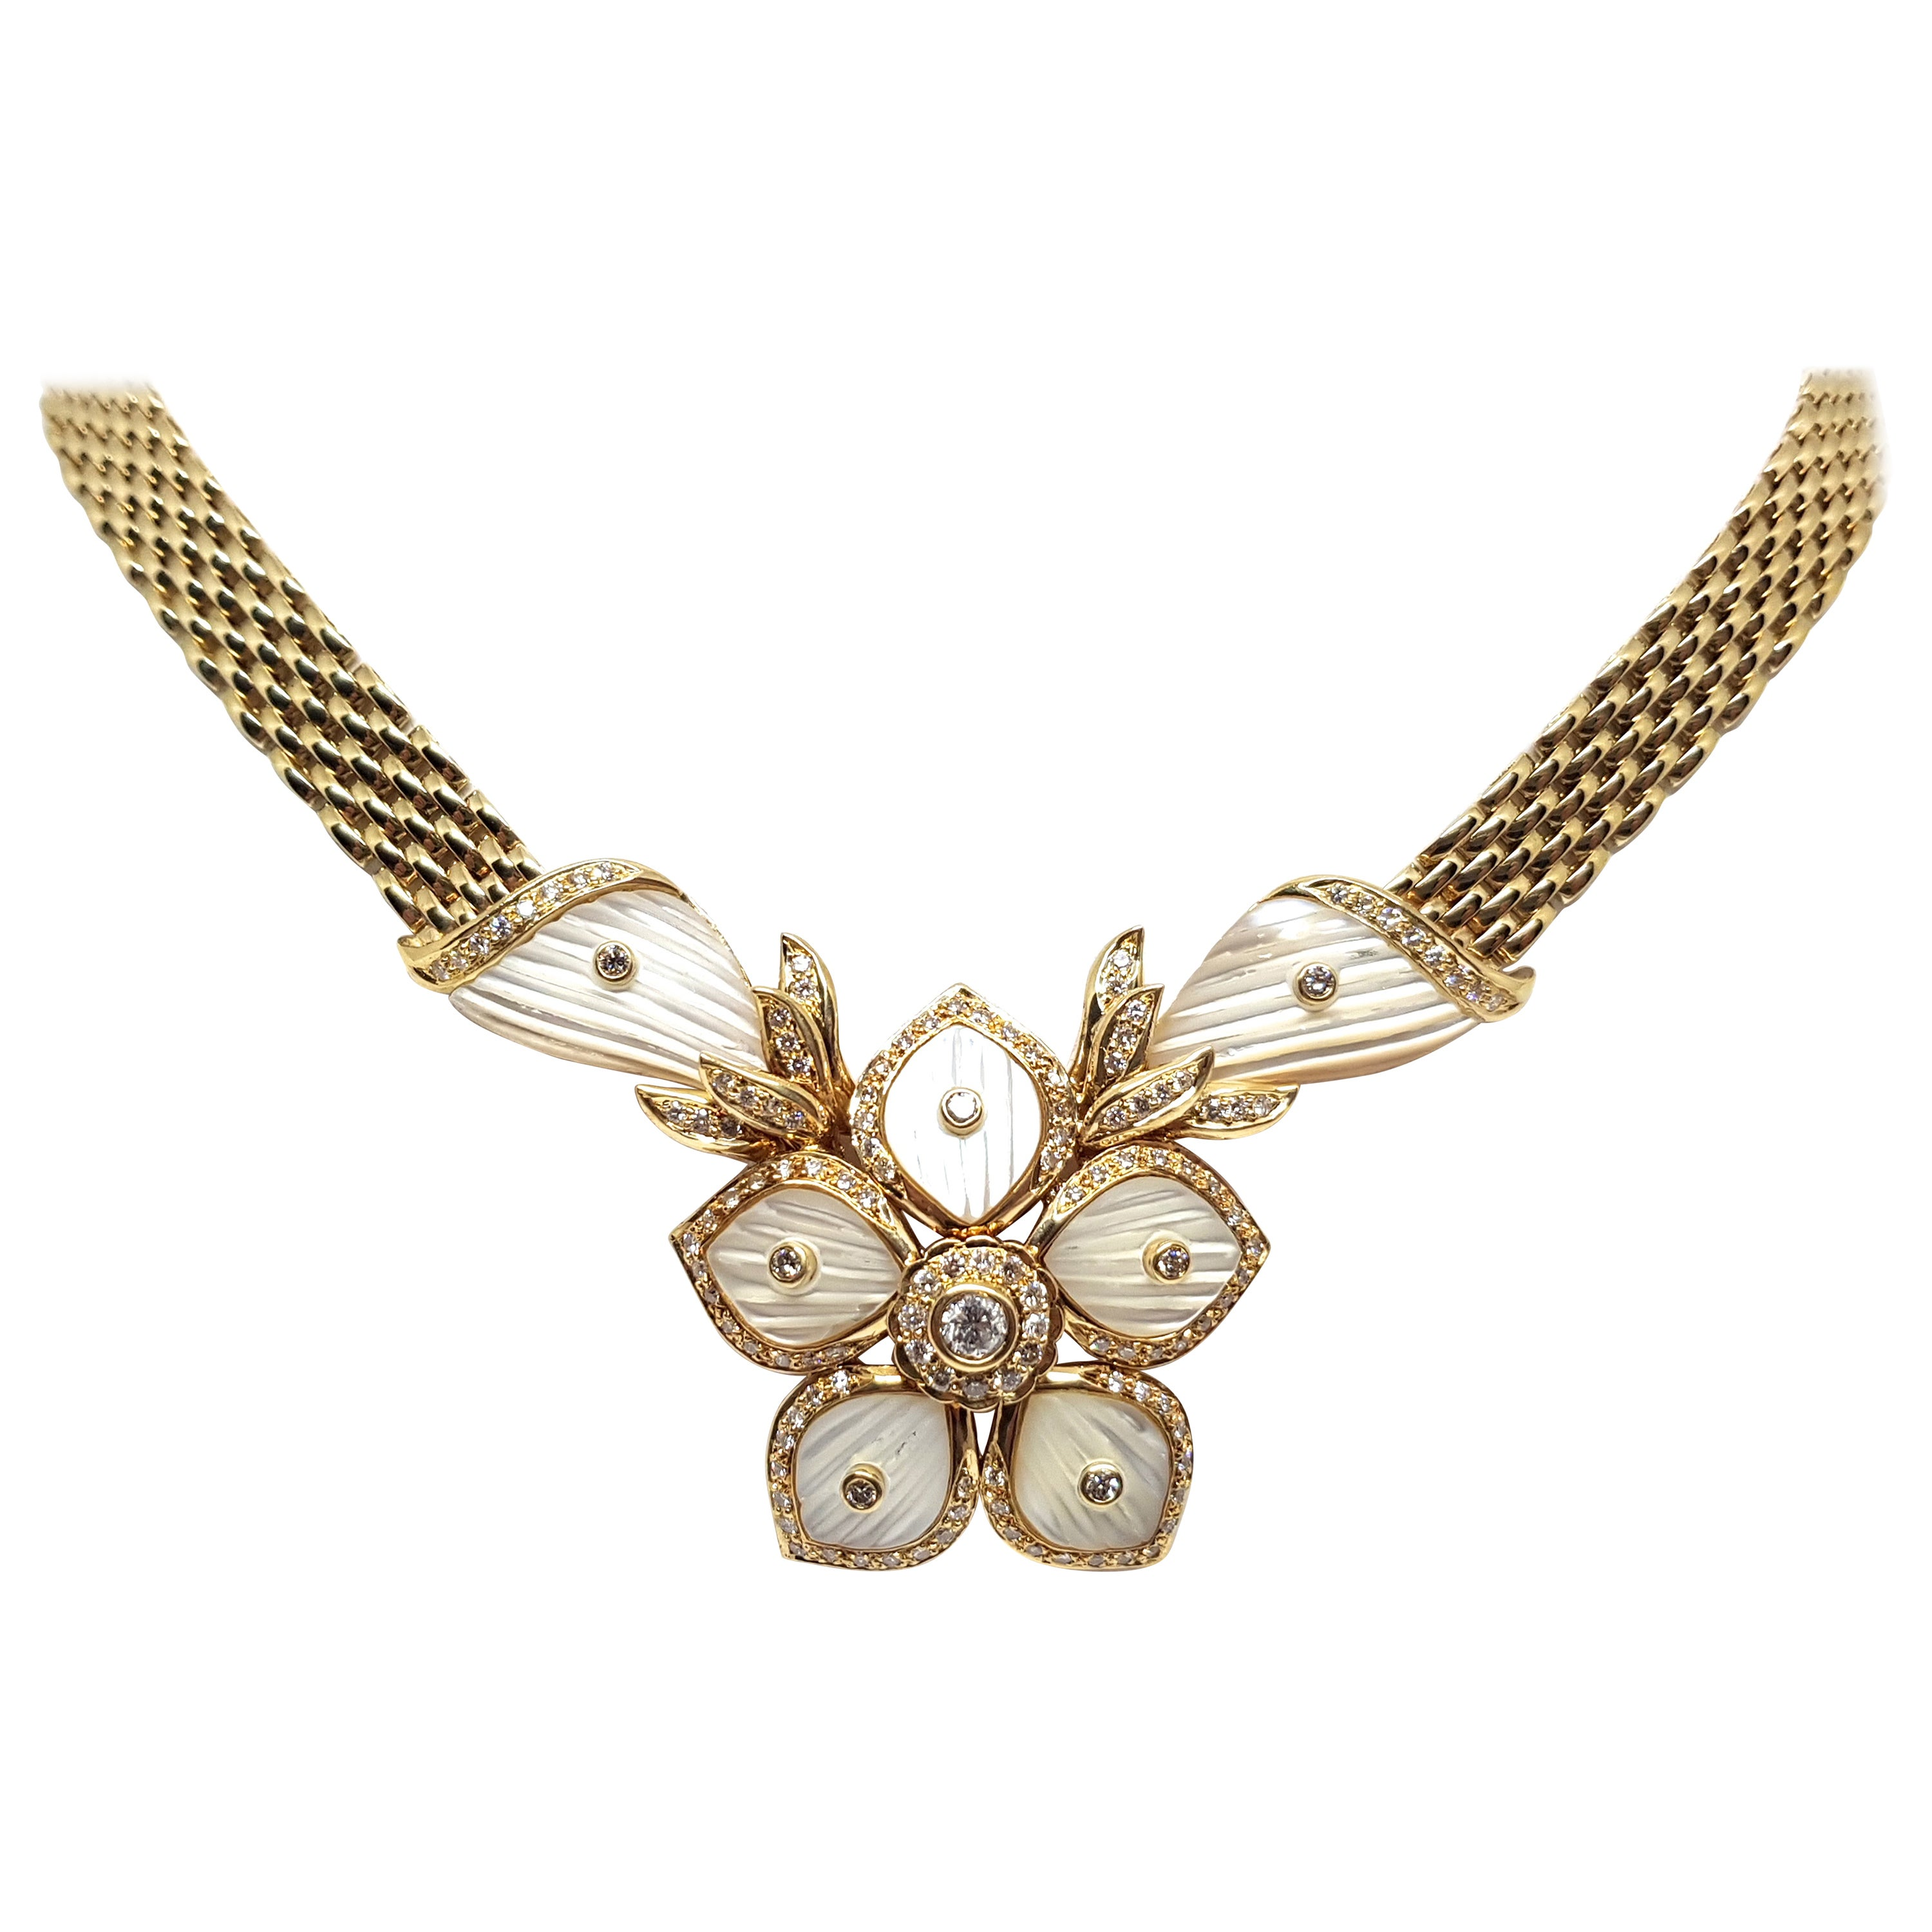 2.96 Carat Yellow Gold Diamond Mother of Pearl Necklace